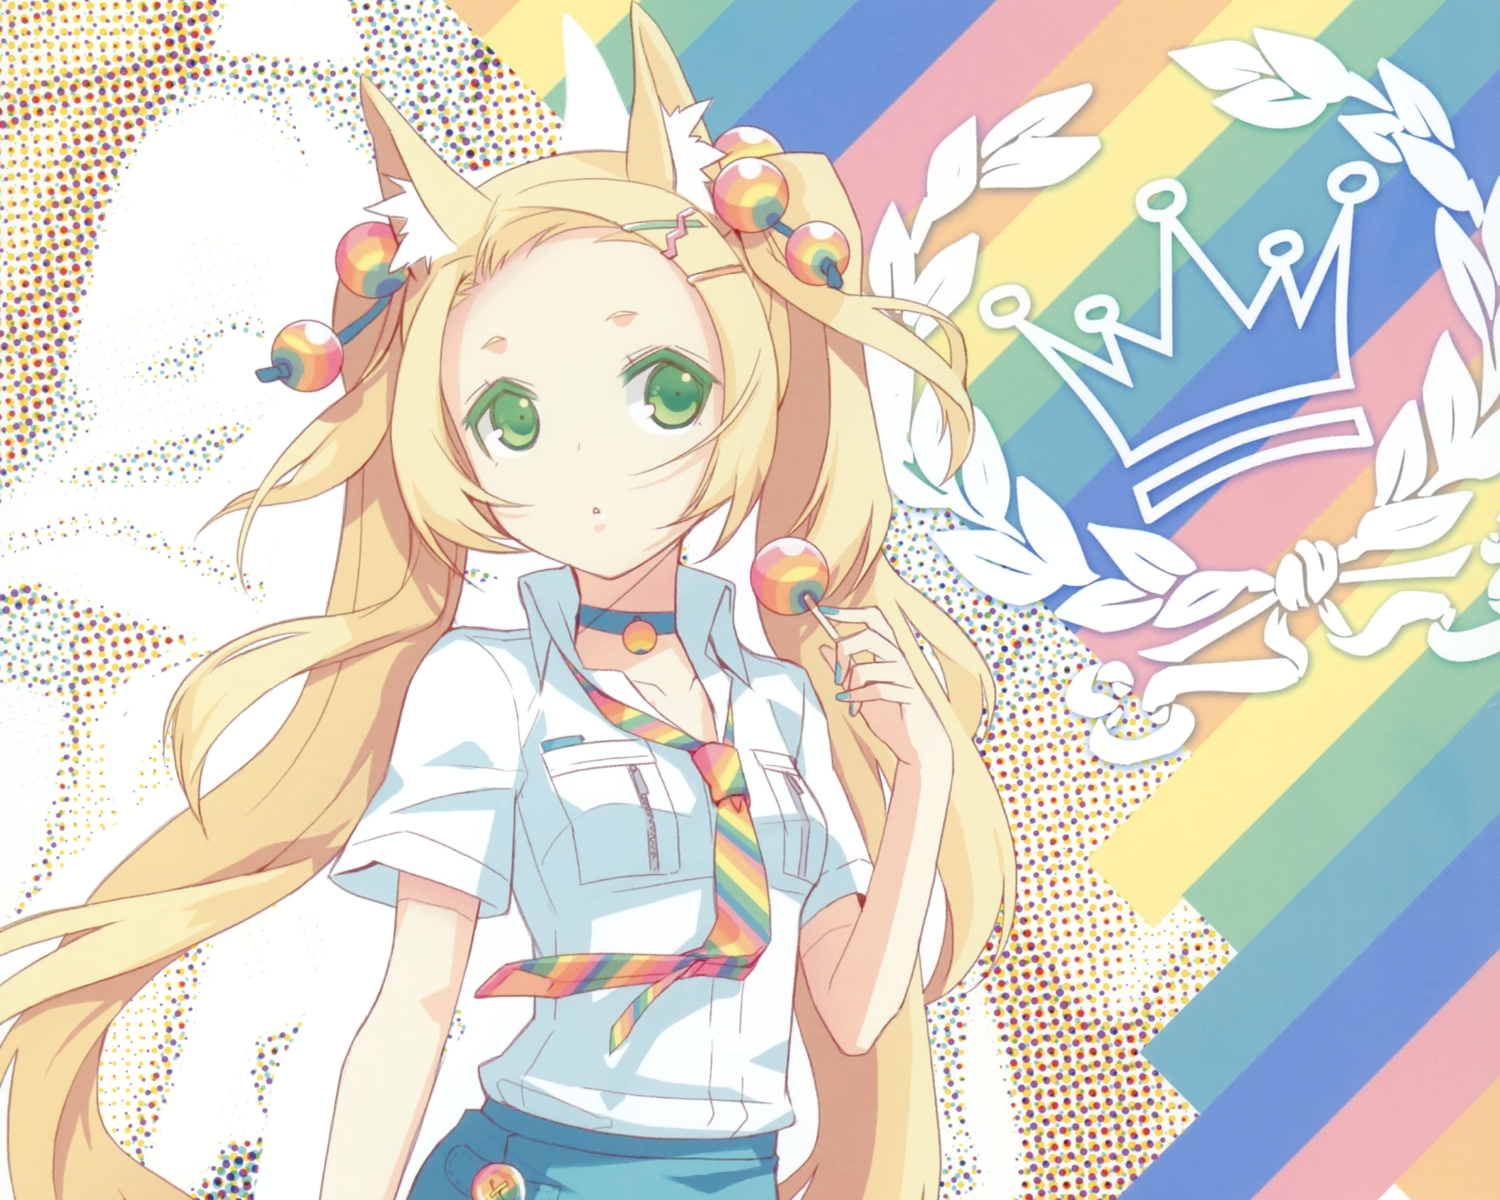 animal_ears blonde_hair candy catgirl choker cropped feathers green_eyes h2so4 island_of_horizon lollipop original rainbow scan tie twintails